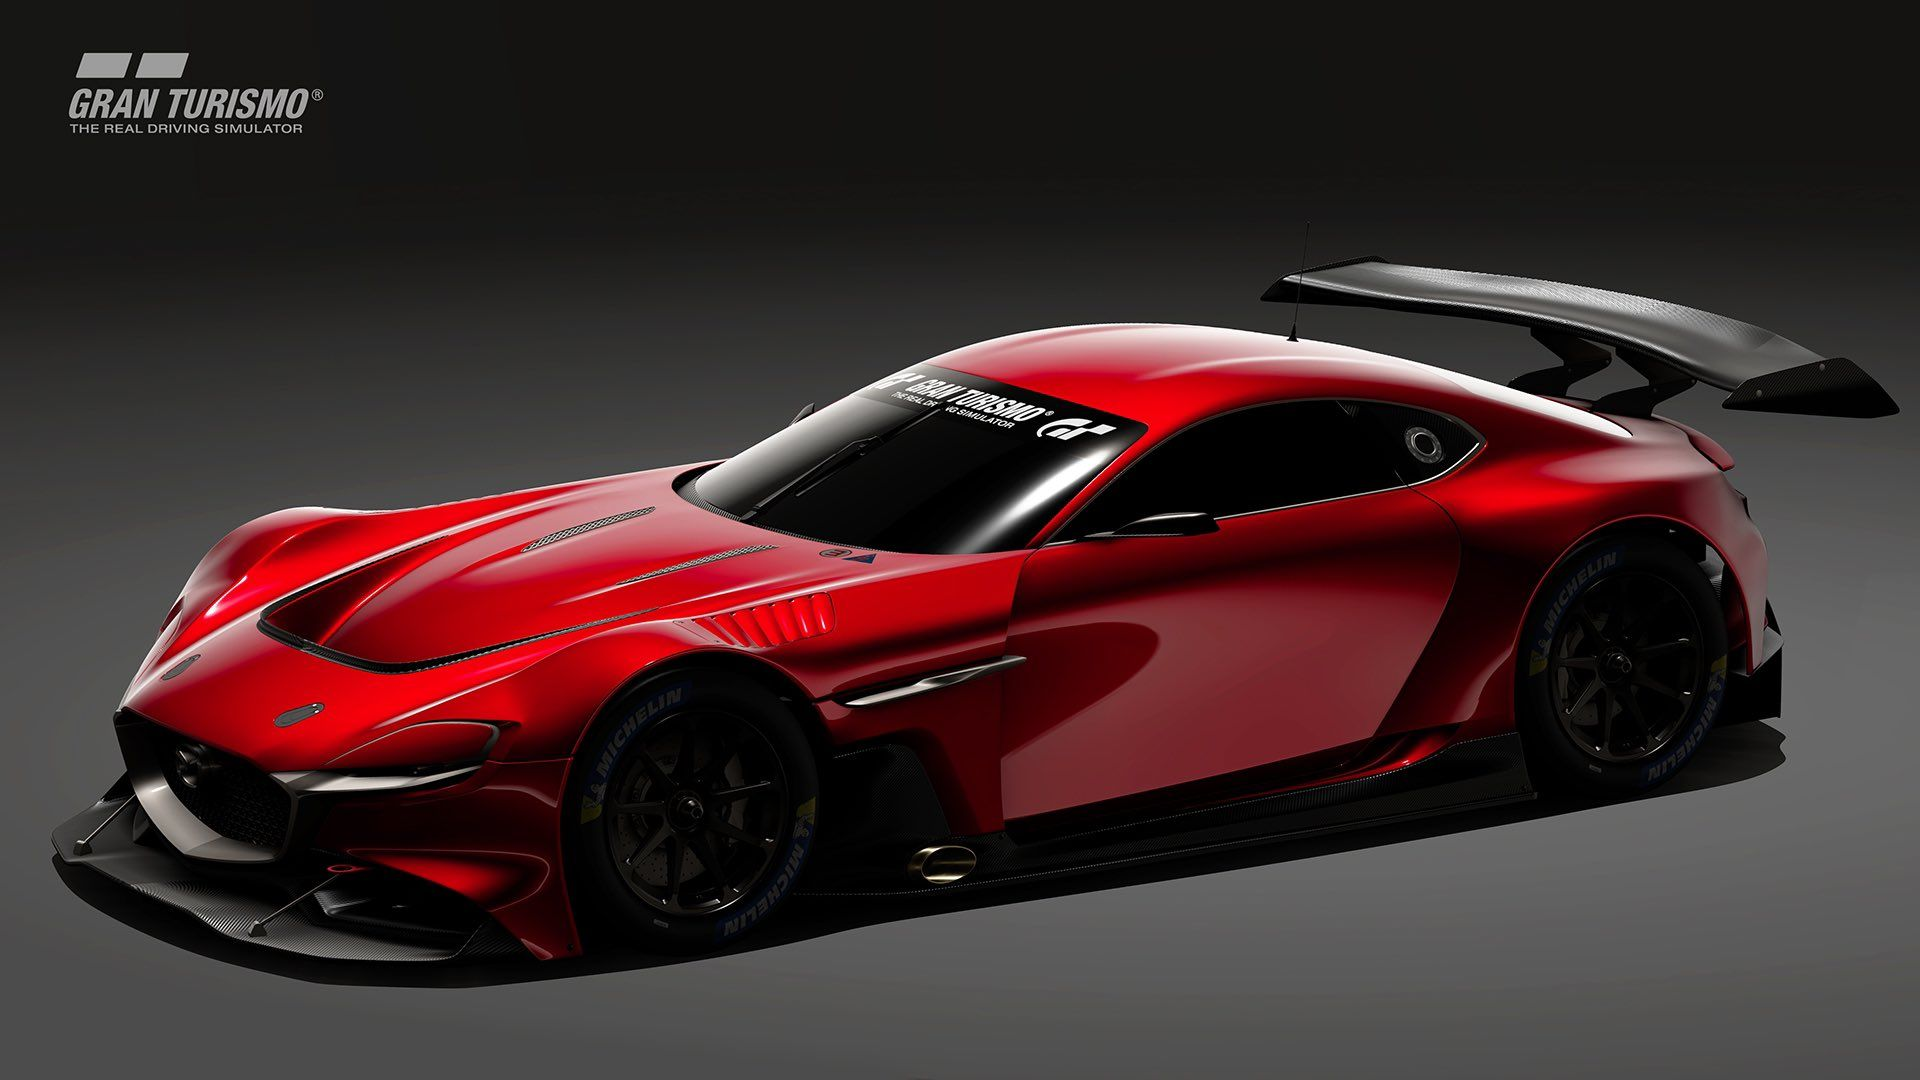 Get Ready To Race The Mazda Rx Vision Gt3 Concept On Your Big Screen Tv Next Year Concepts Granturismo Mazda Mazdaconcepts Mazdavid Mazda Concept Cars Car